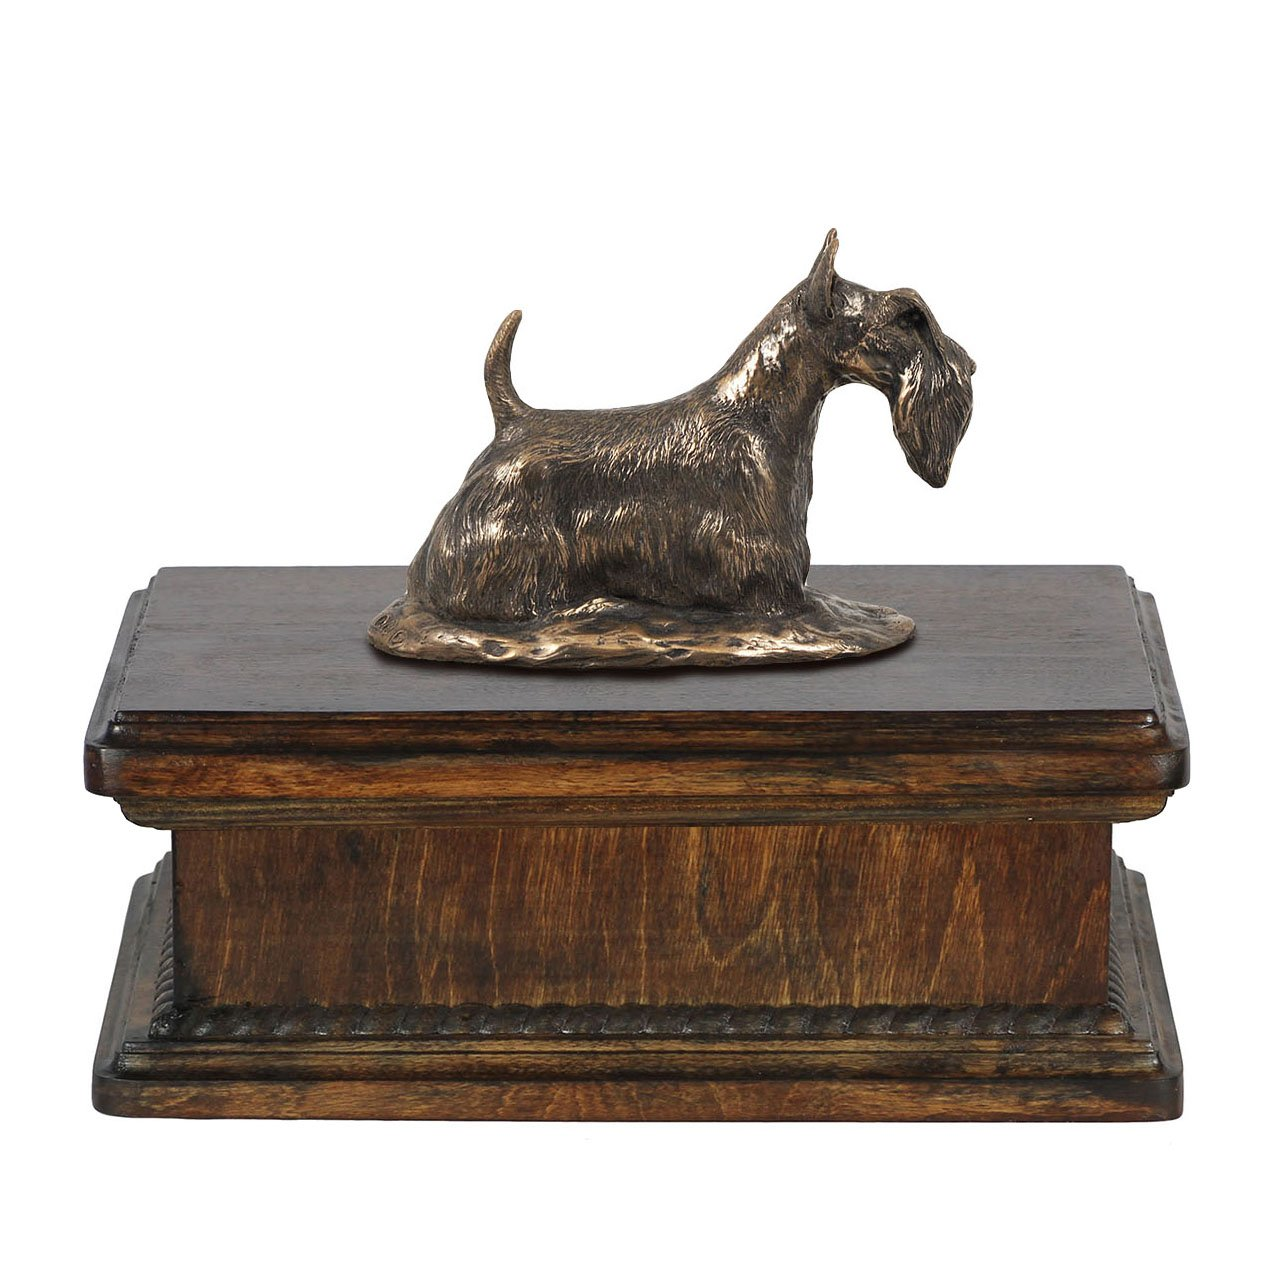 Scottish Terrier, memorial, urn for dog's ashes, with dog statue, exclusive, ArtDog